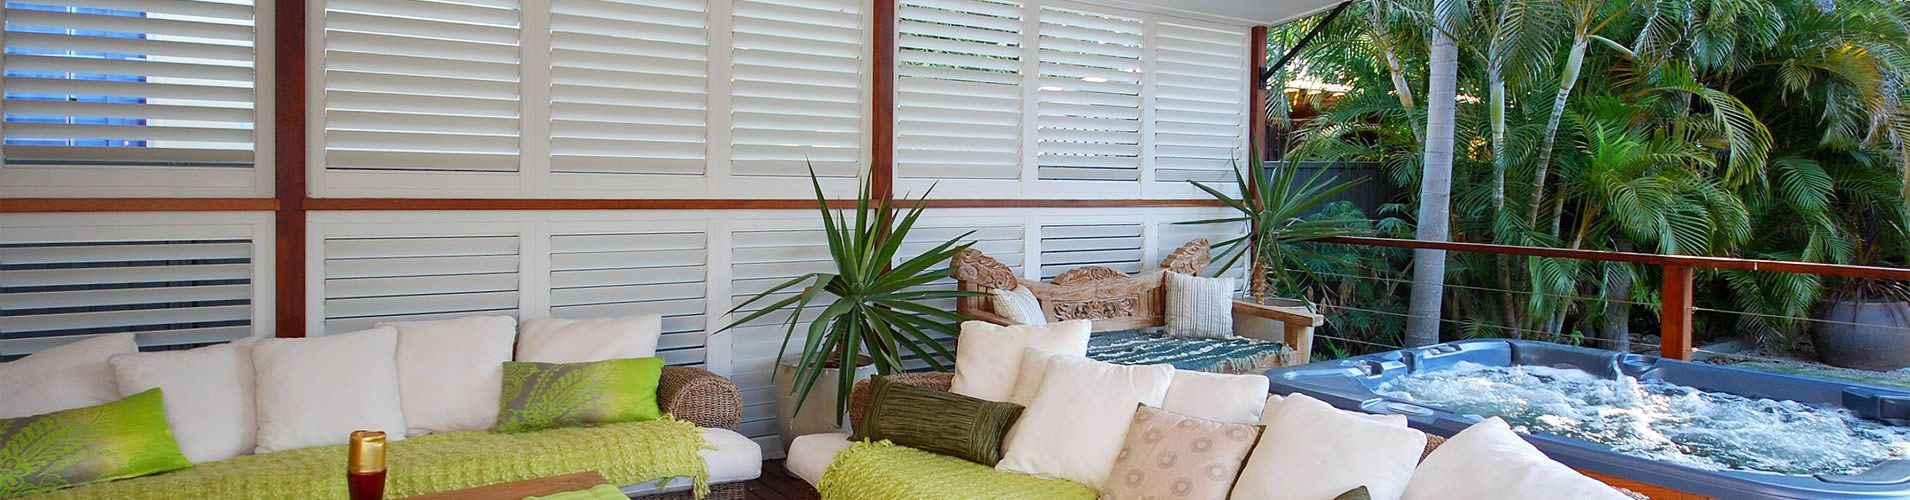 Austin Outdoor Plantation Shutters The Shading Co